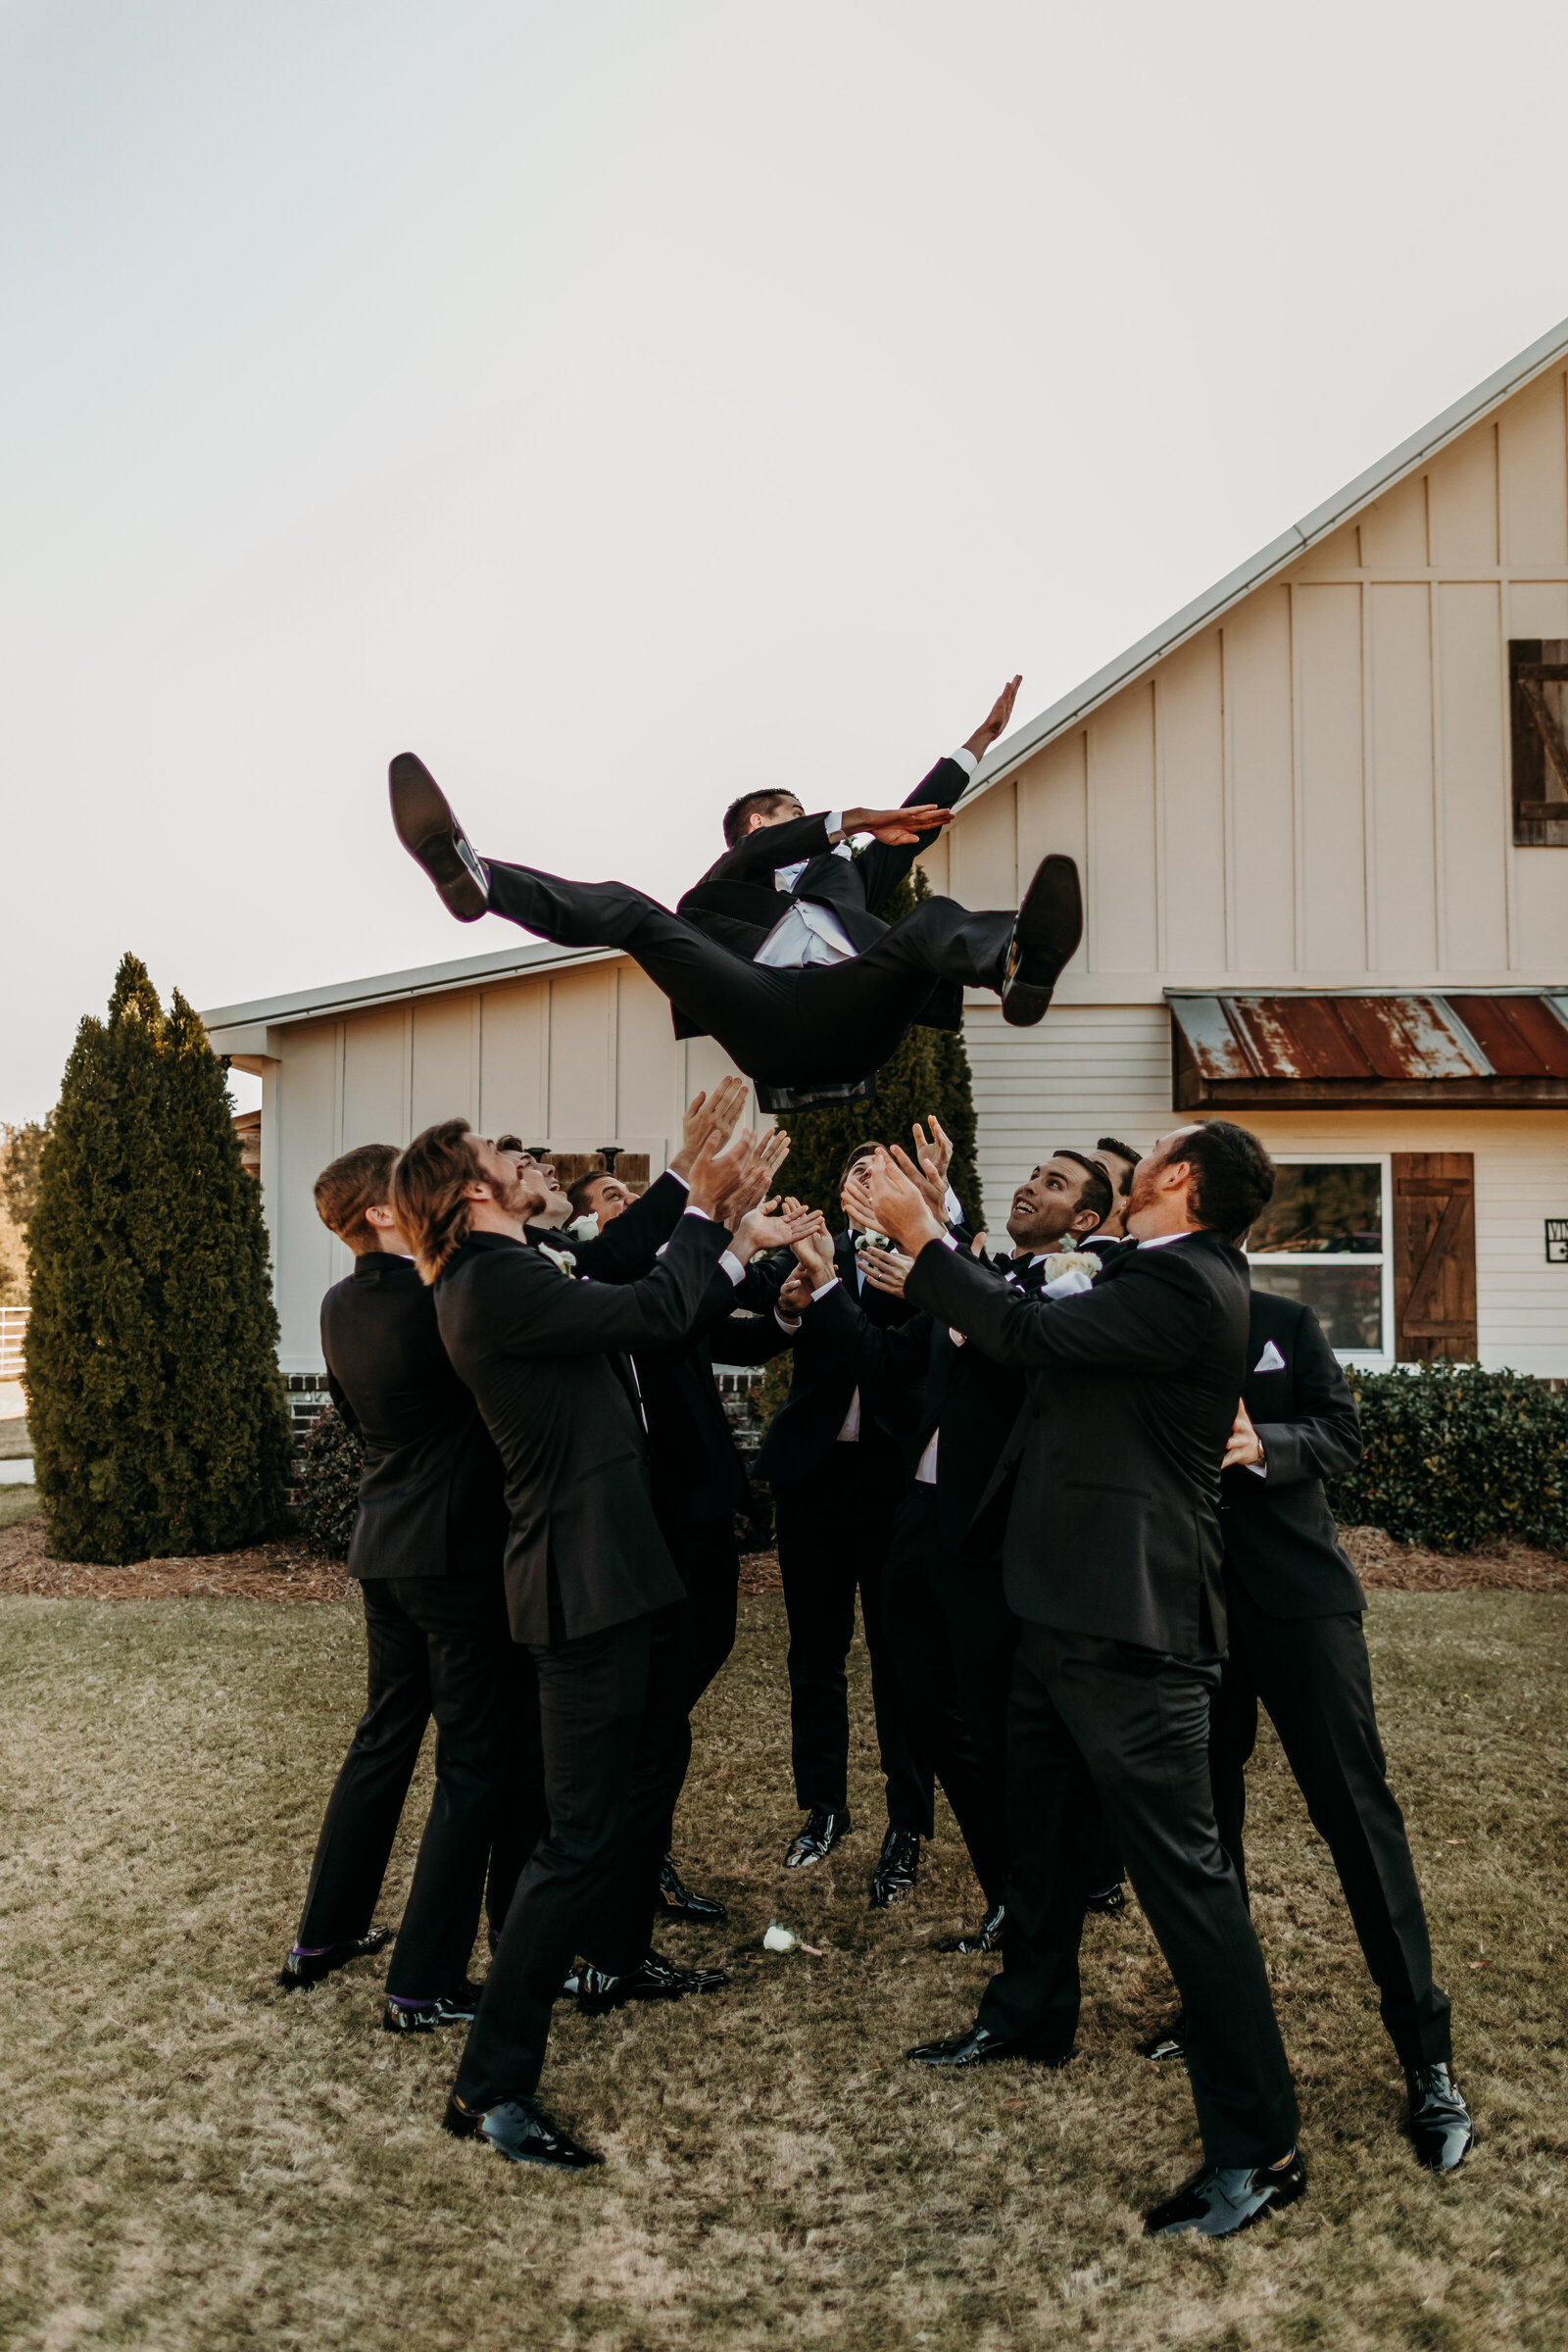 J.Michelle Photography photographs groomsmen through groom in the air at vintage oaks farm wedding in Athens, Ga